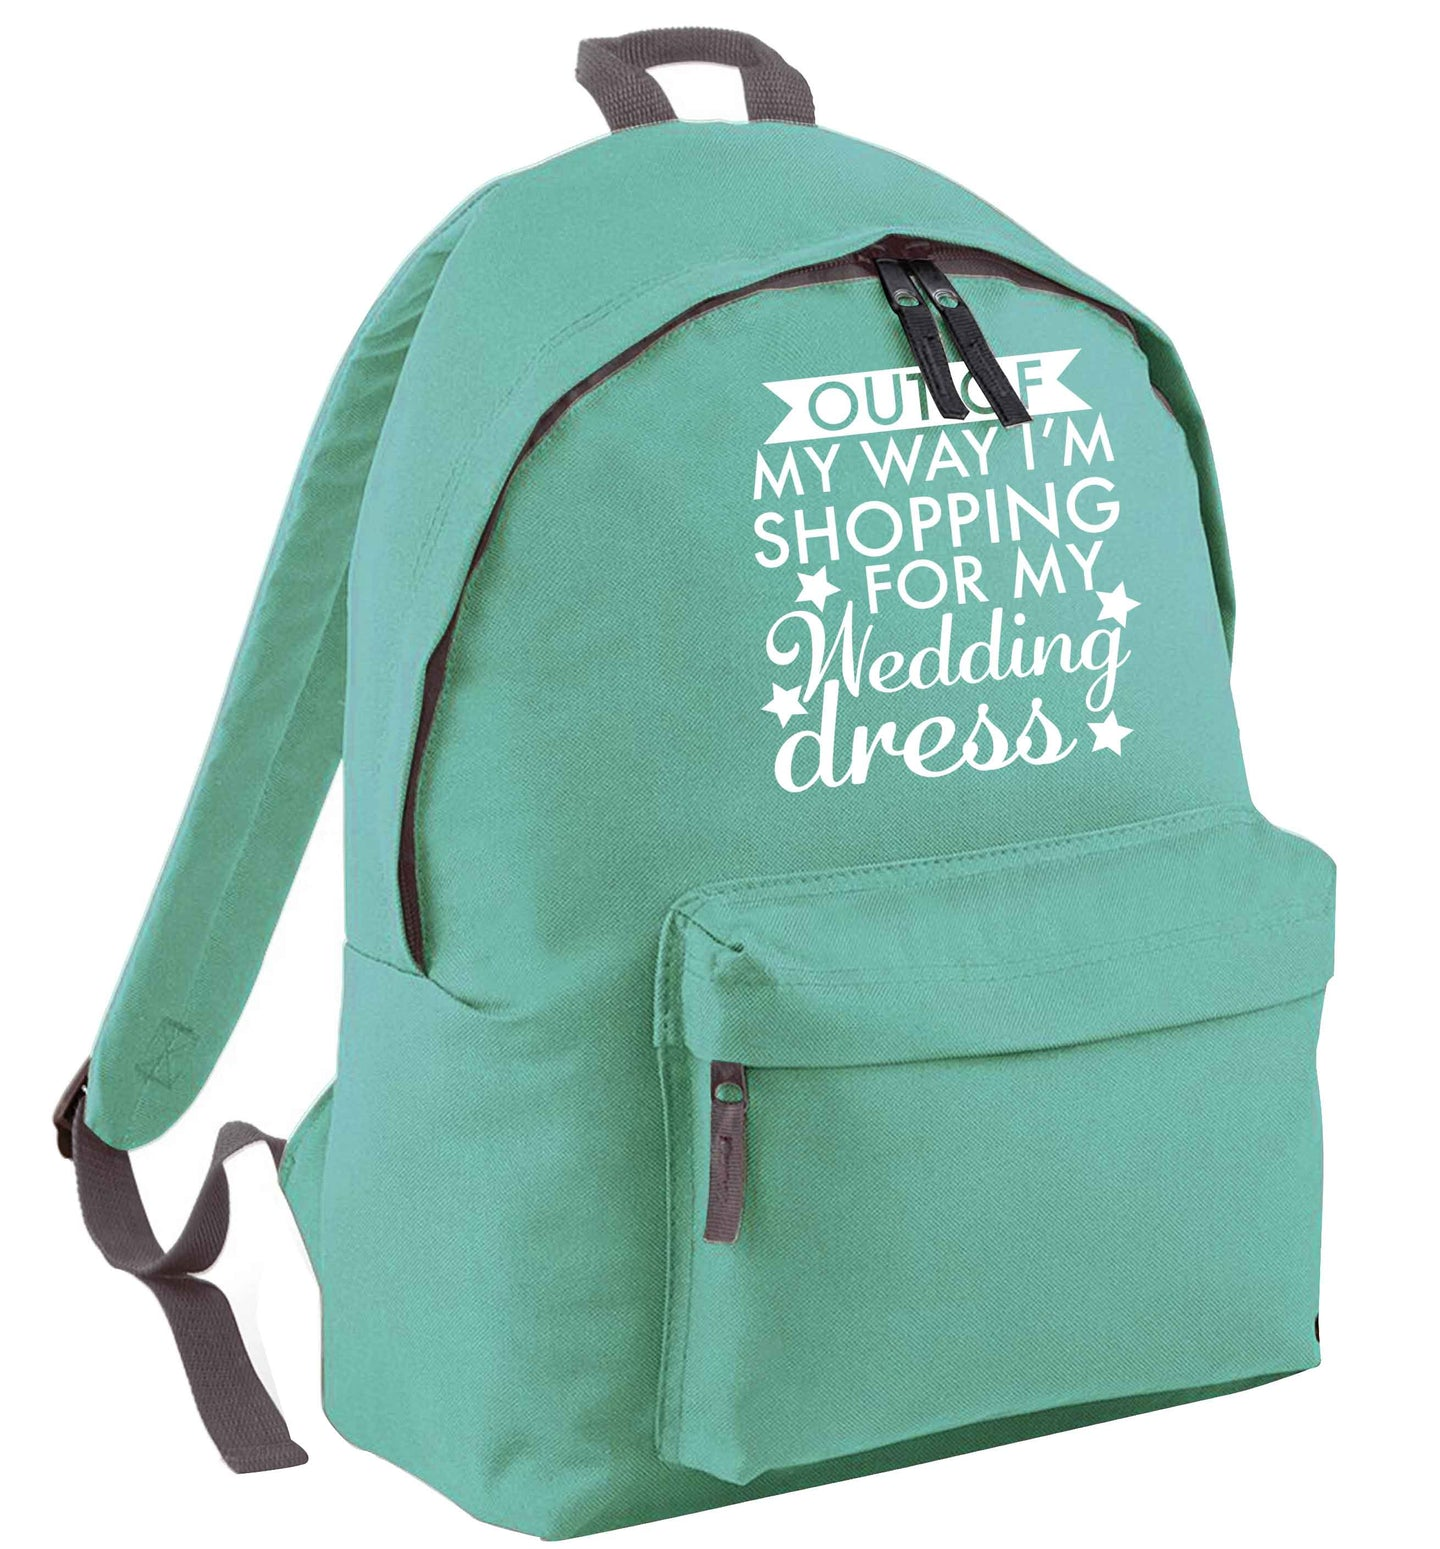 Out of my way I'm shopping for my wedding dress mint adults backpack